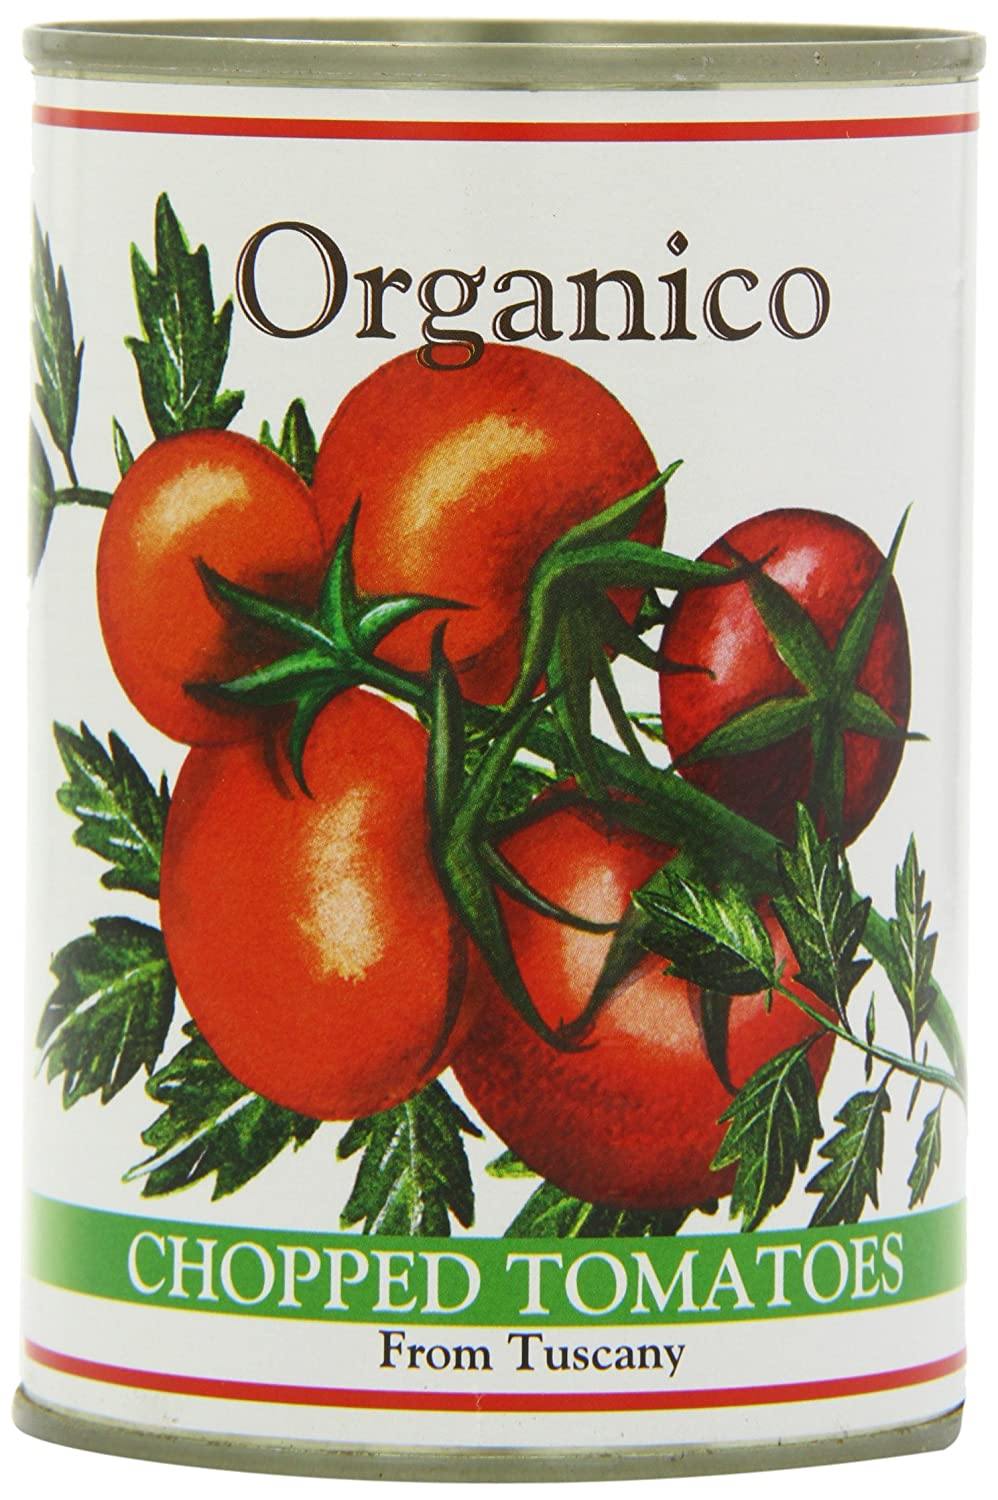 organico-chopped-tomatoes-organic-from-tuscany-400-g-pack-of-12